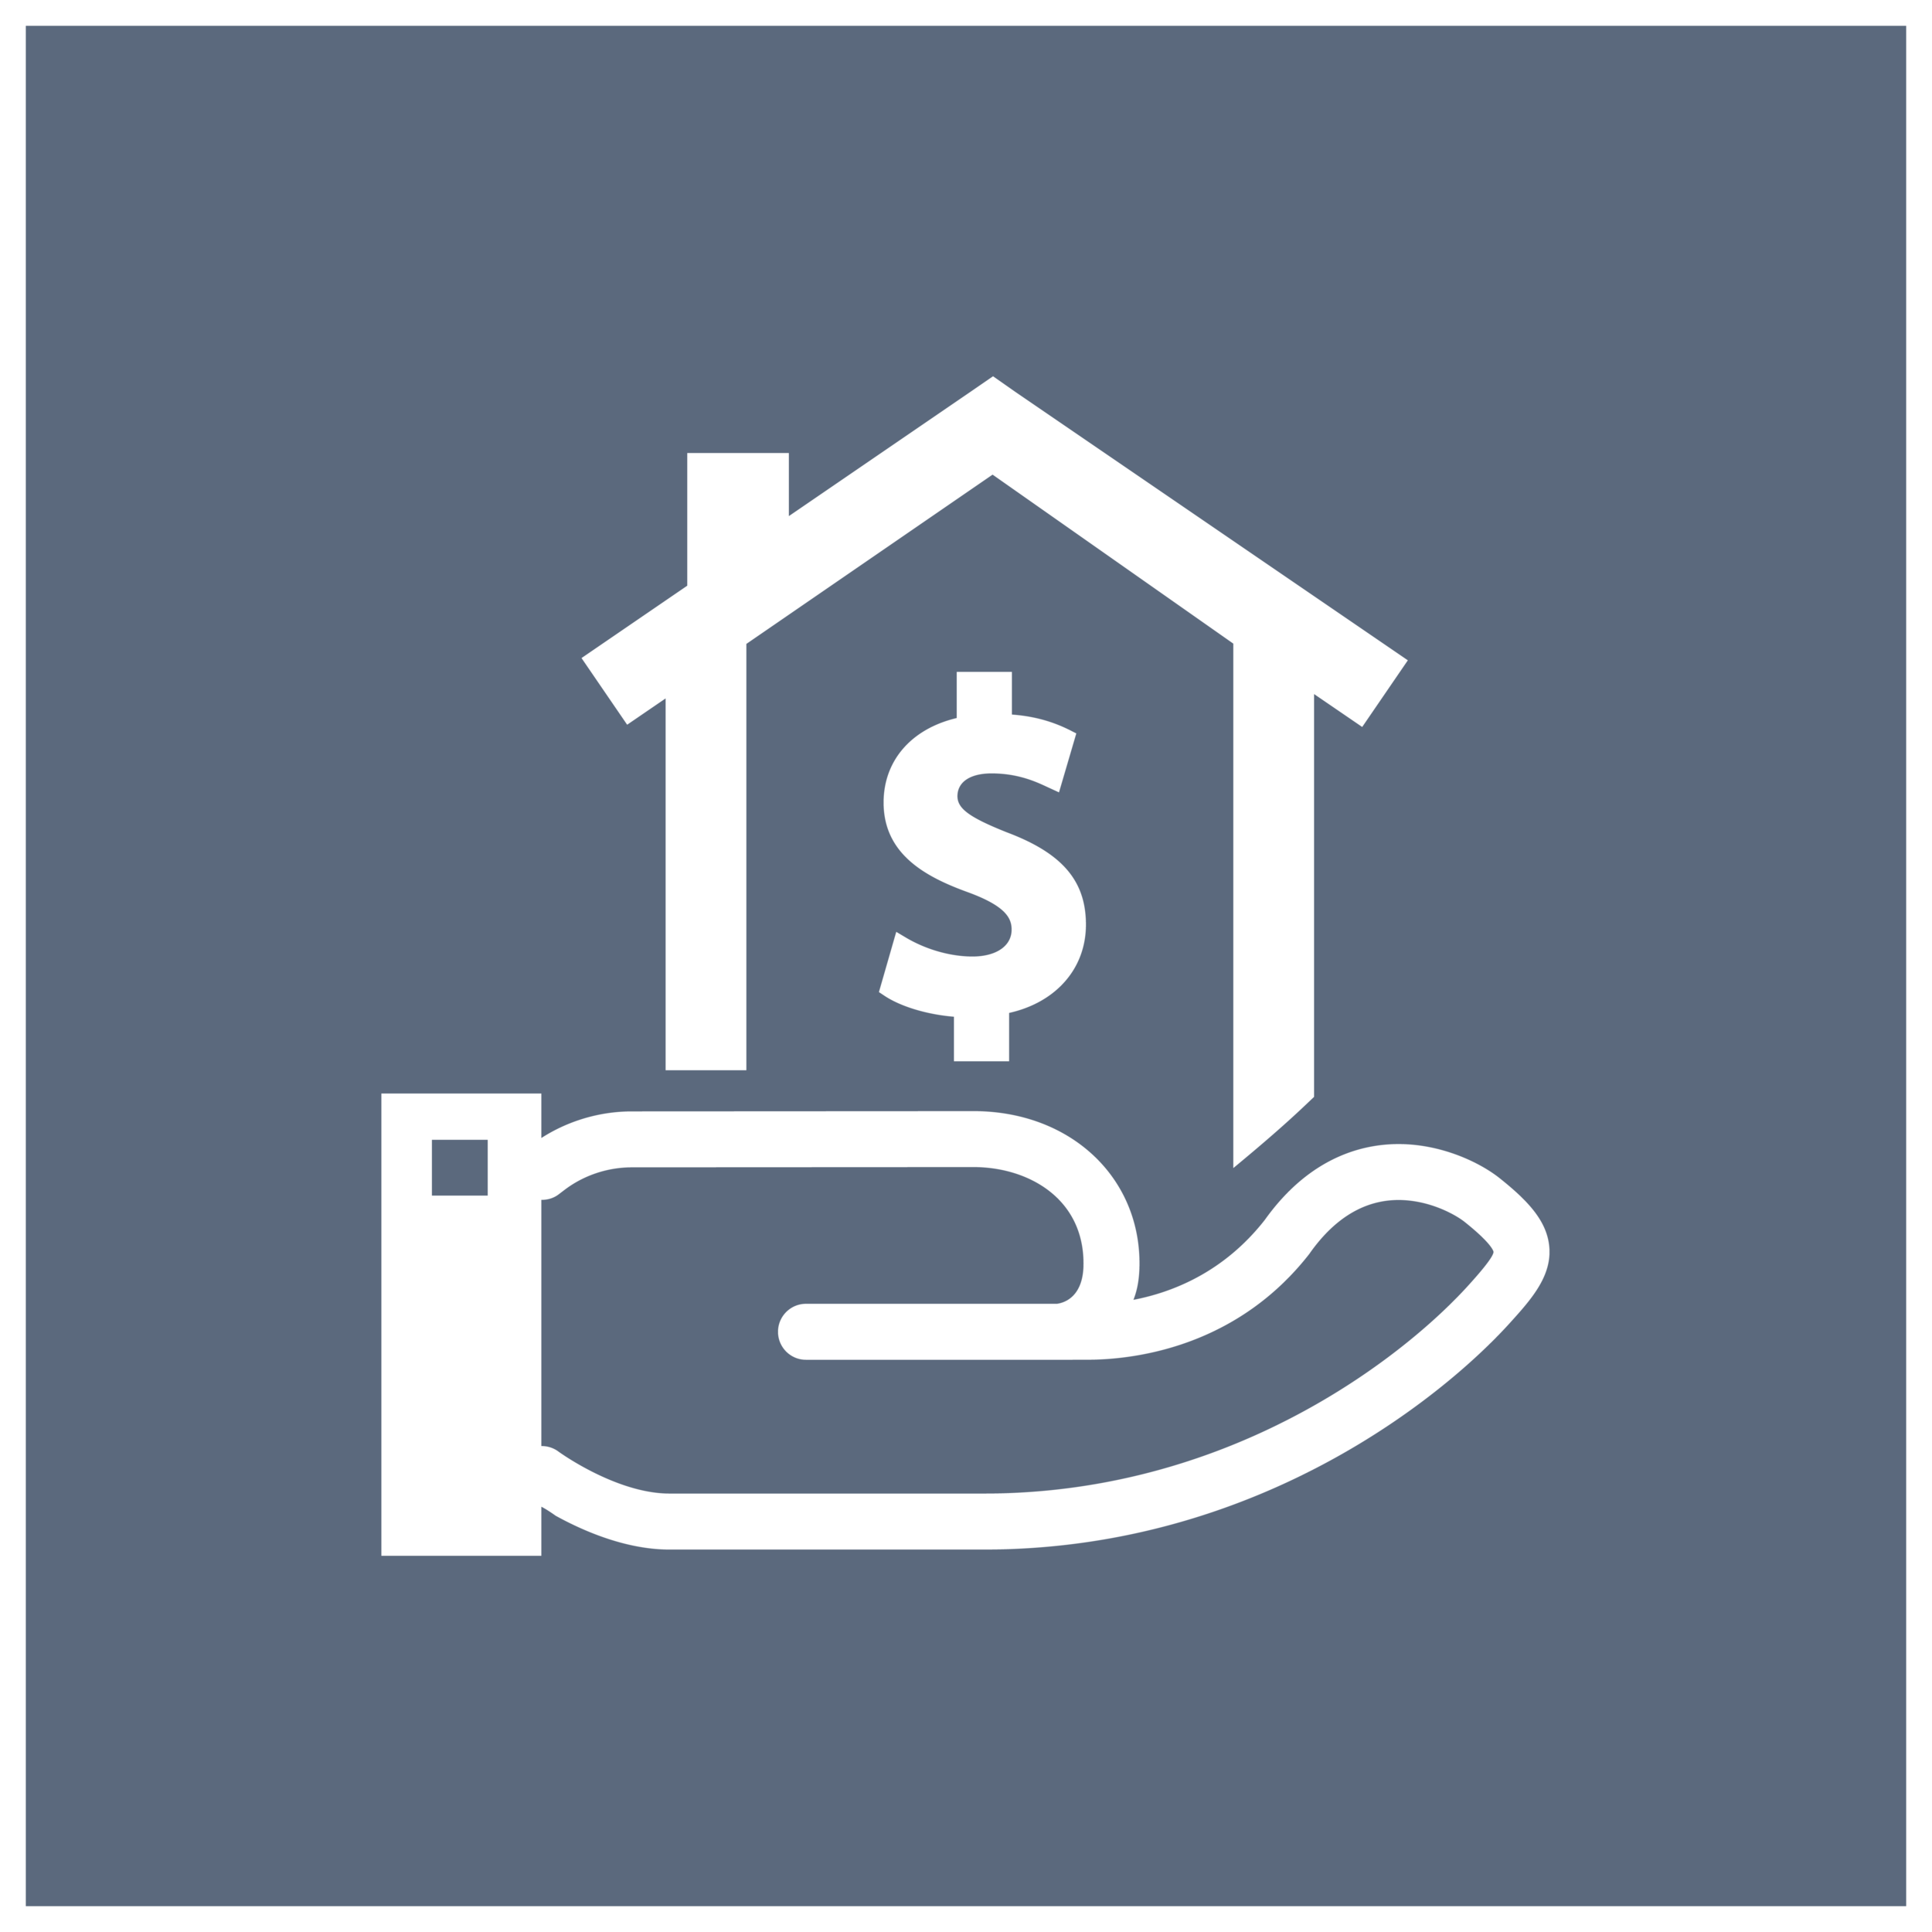 BUY IT - We invest our own capital as well as funds provided from accredited investors to buy stabilized multifamily assets in growing markets.